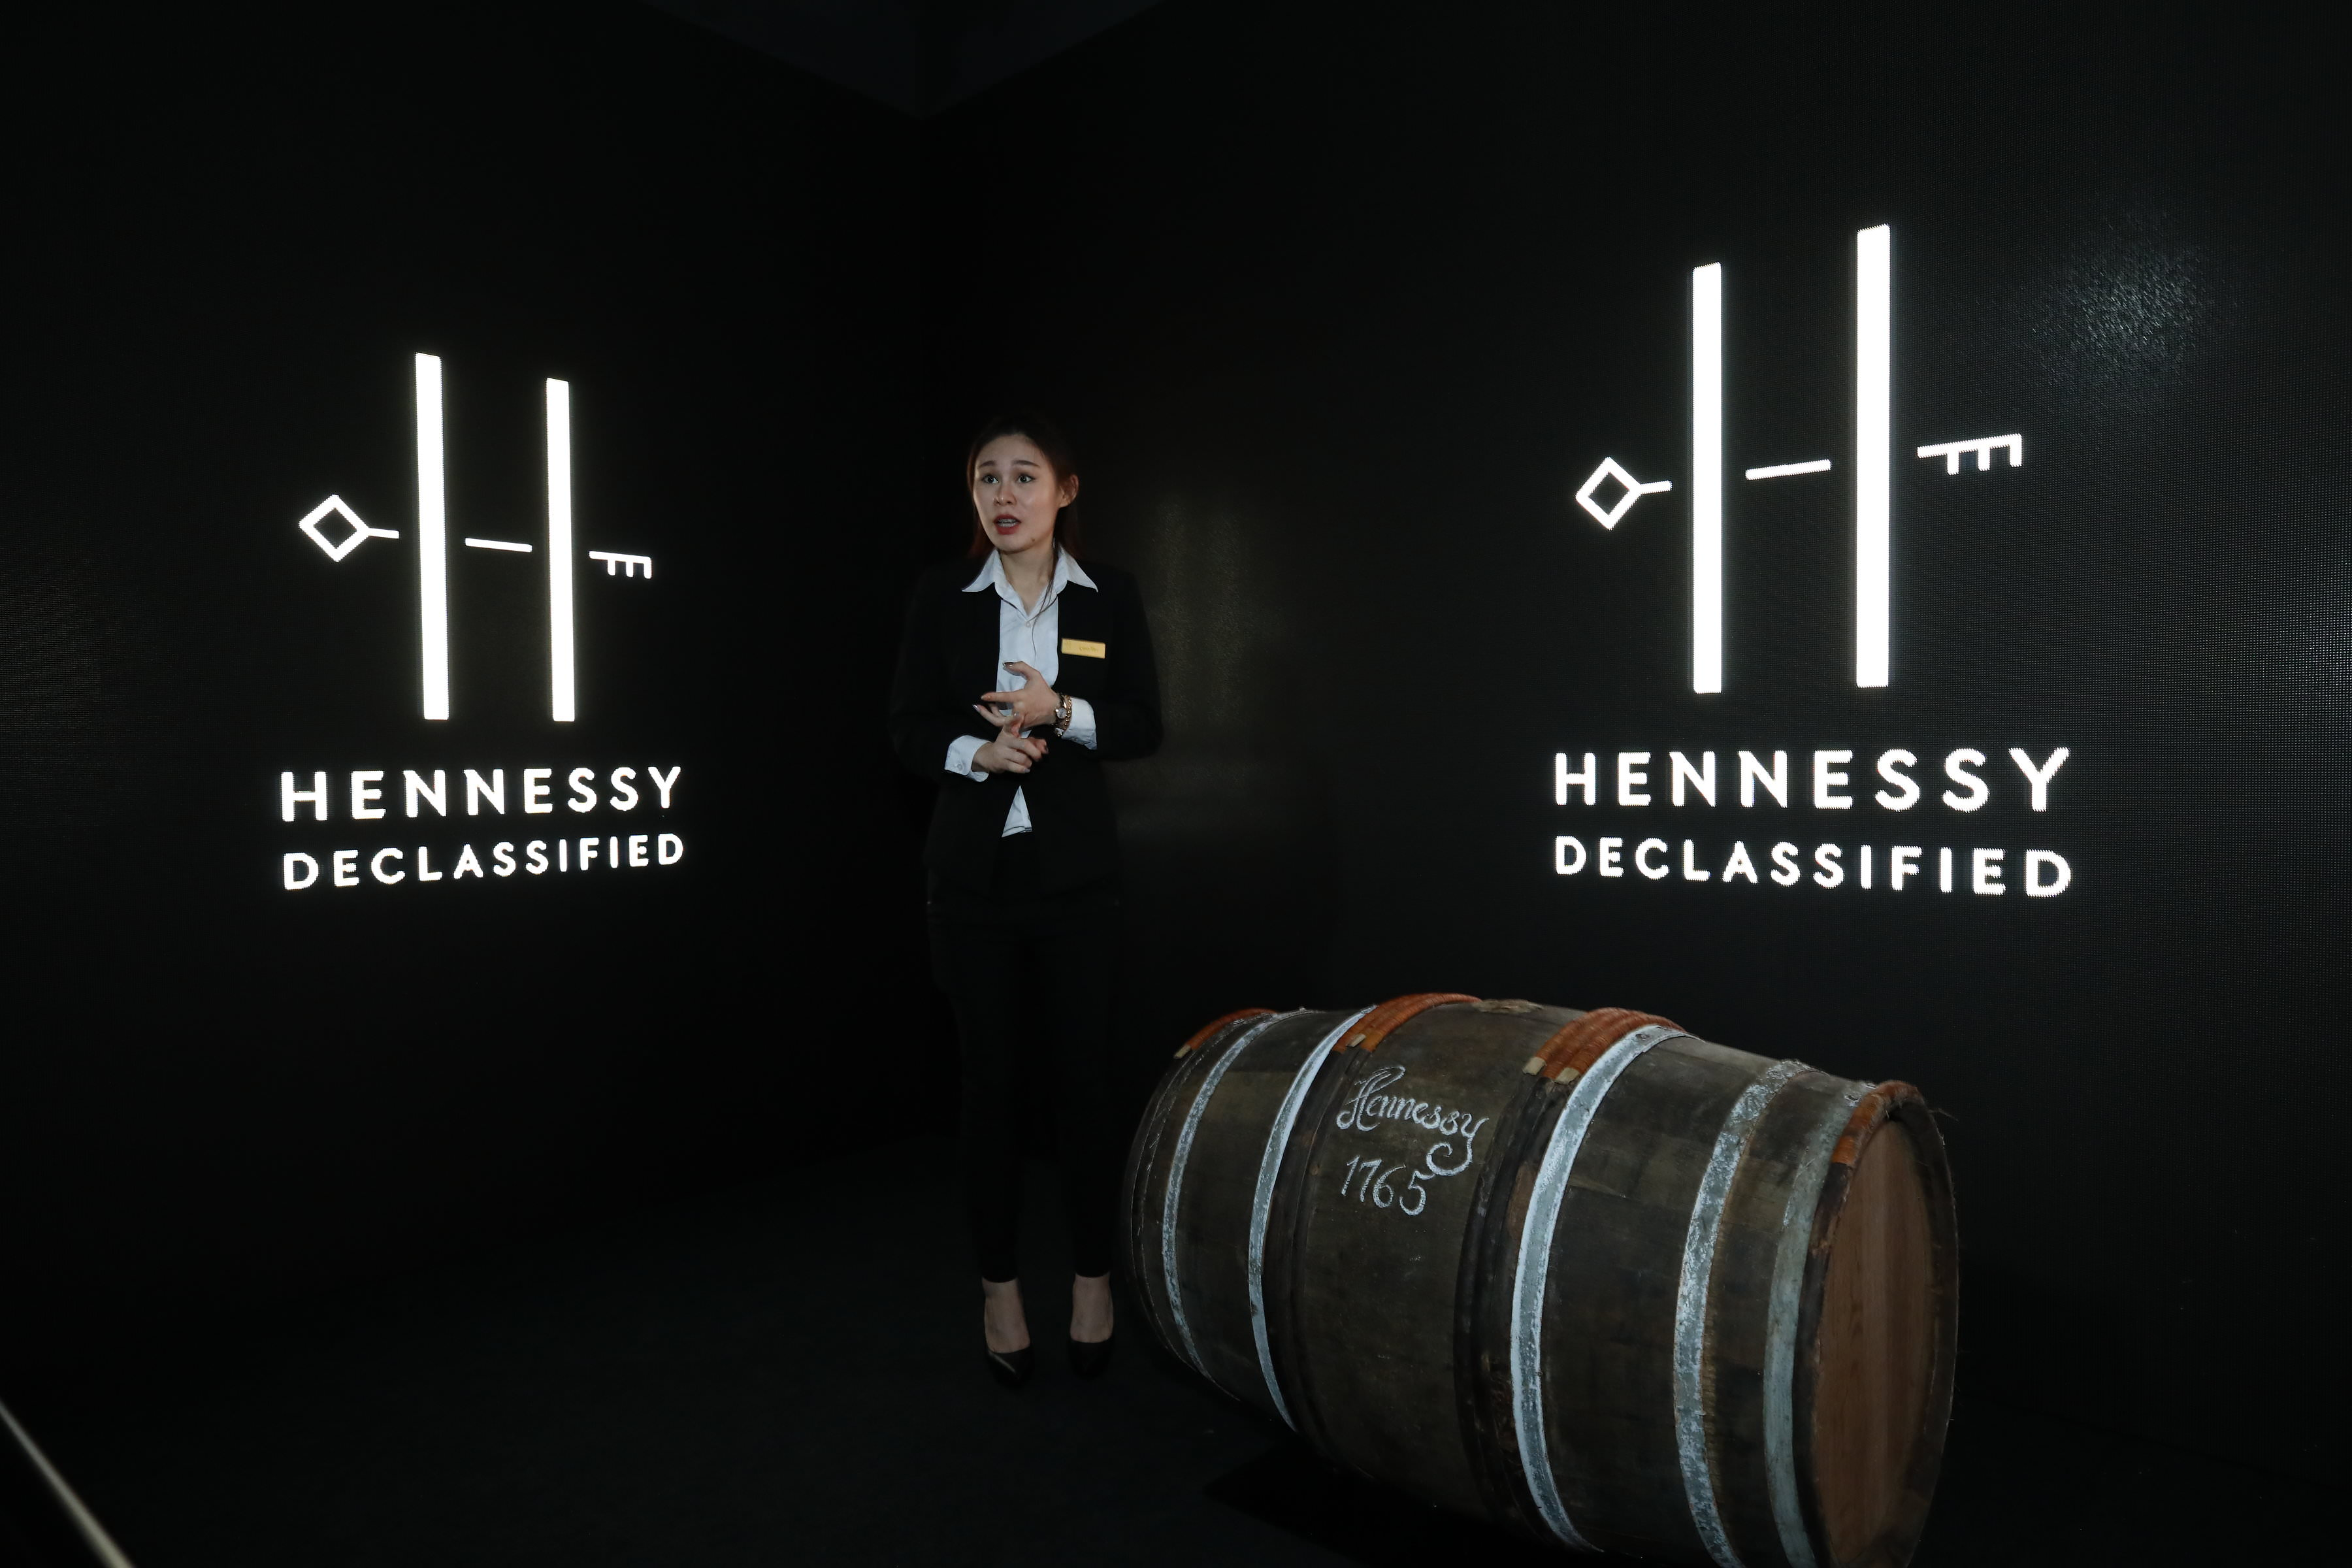 Image from Hennessy